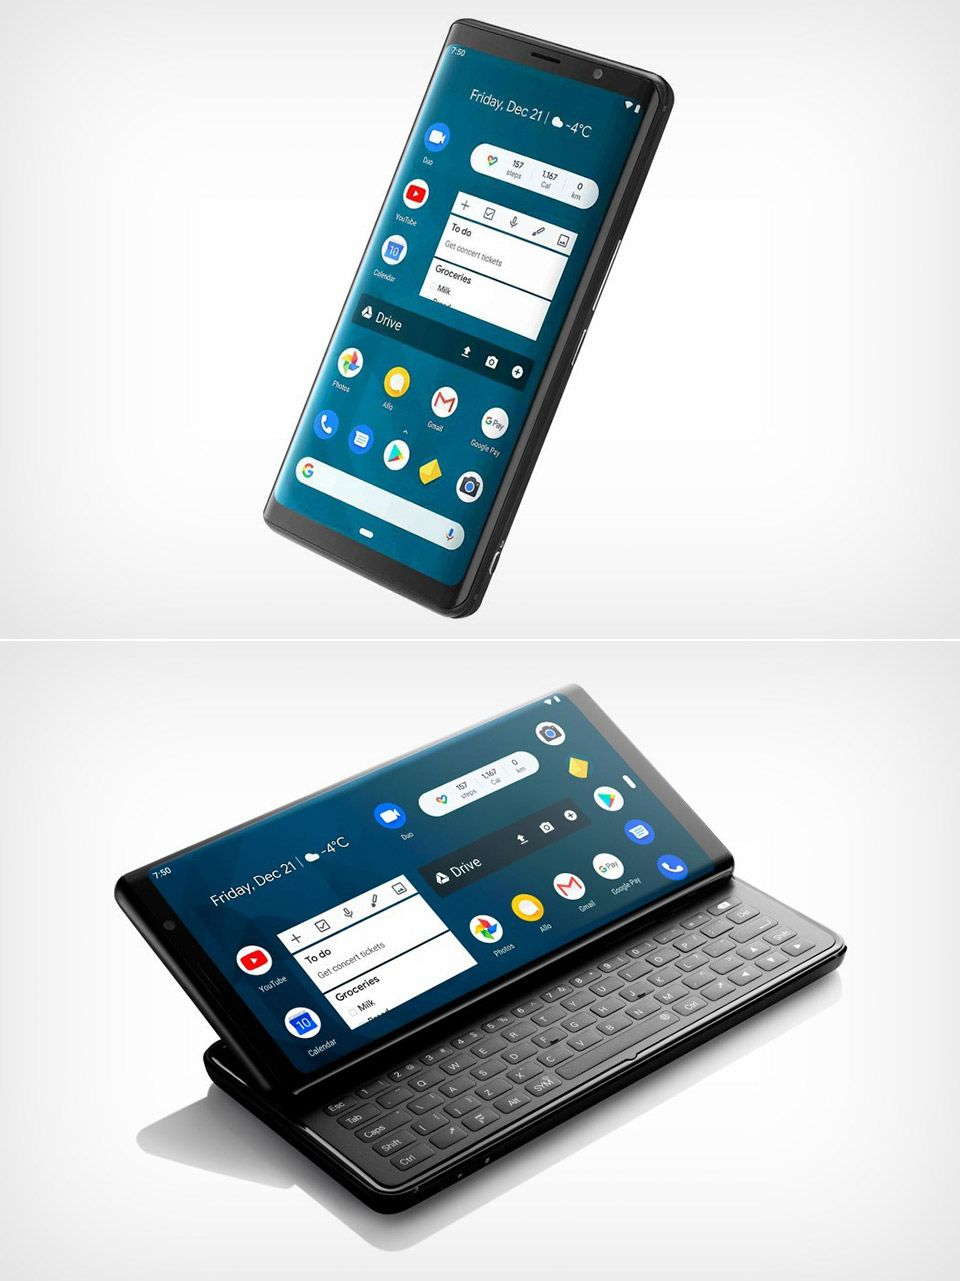 This innovative smartphone has a QWERTY keyboard... New